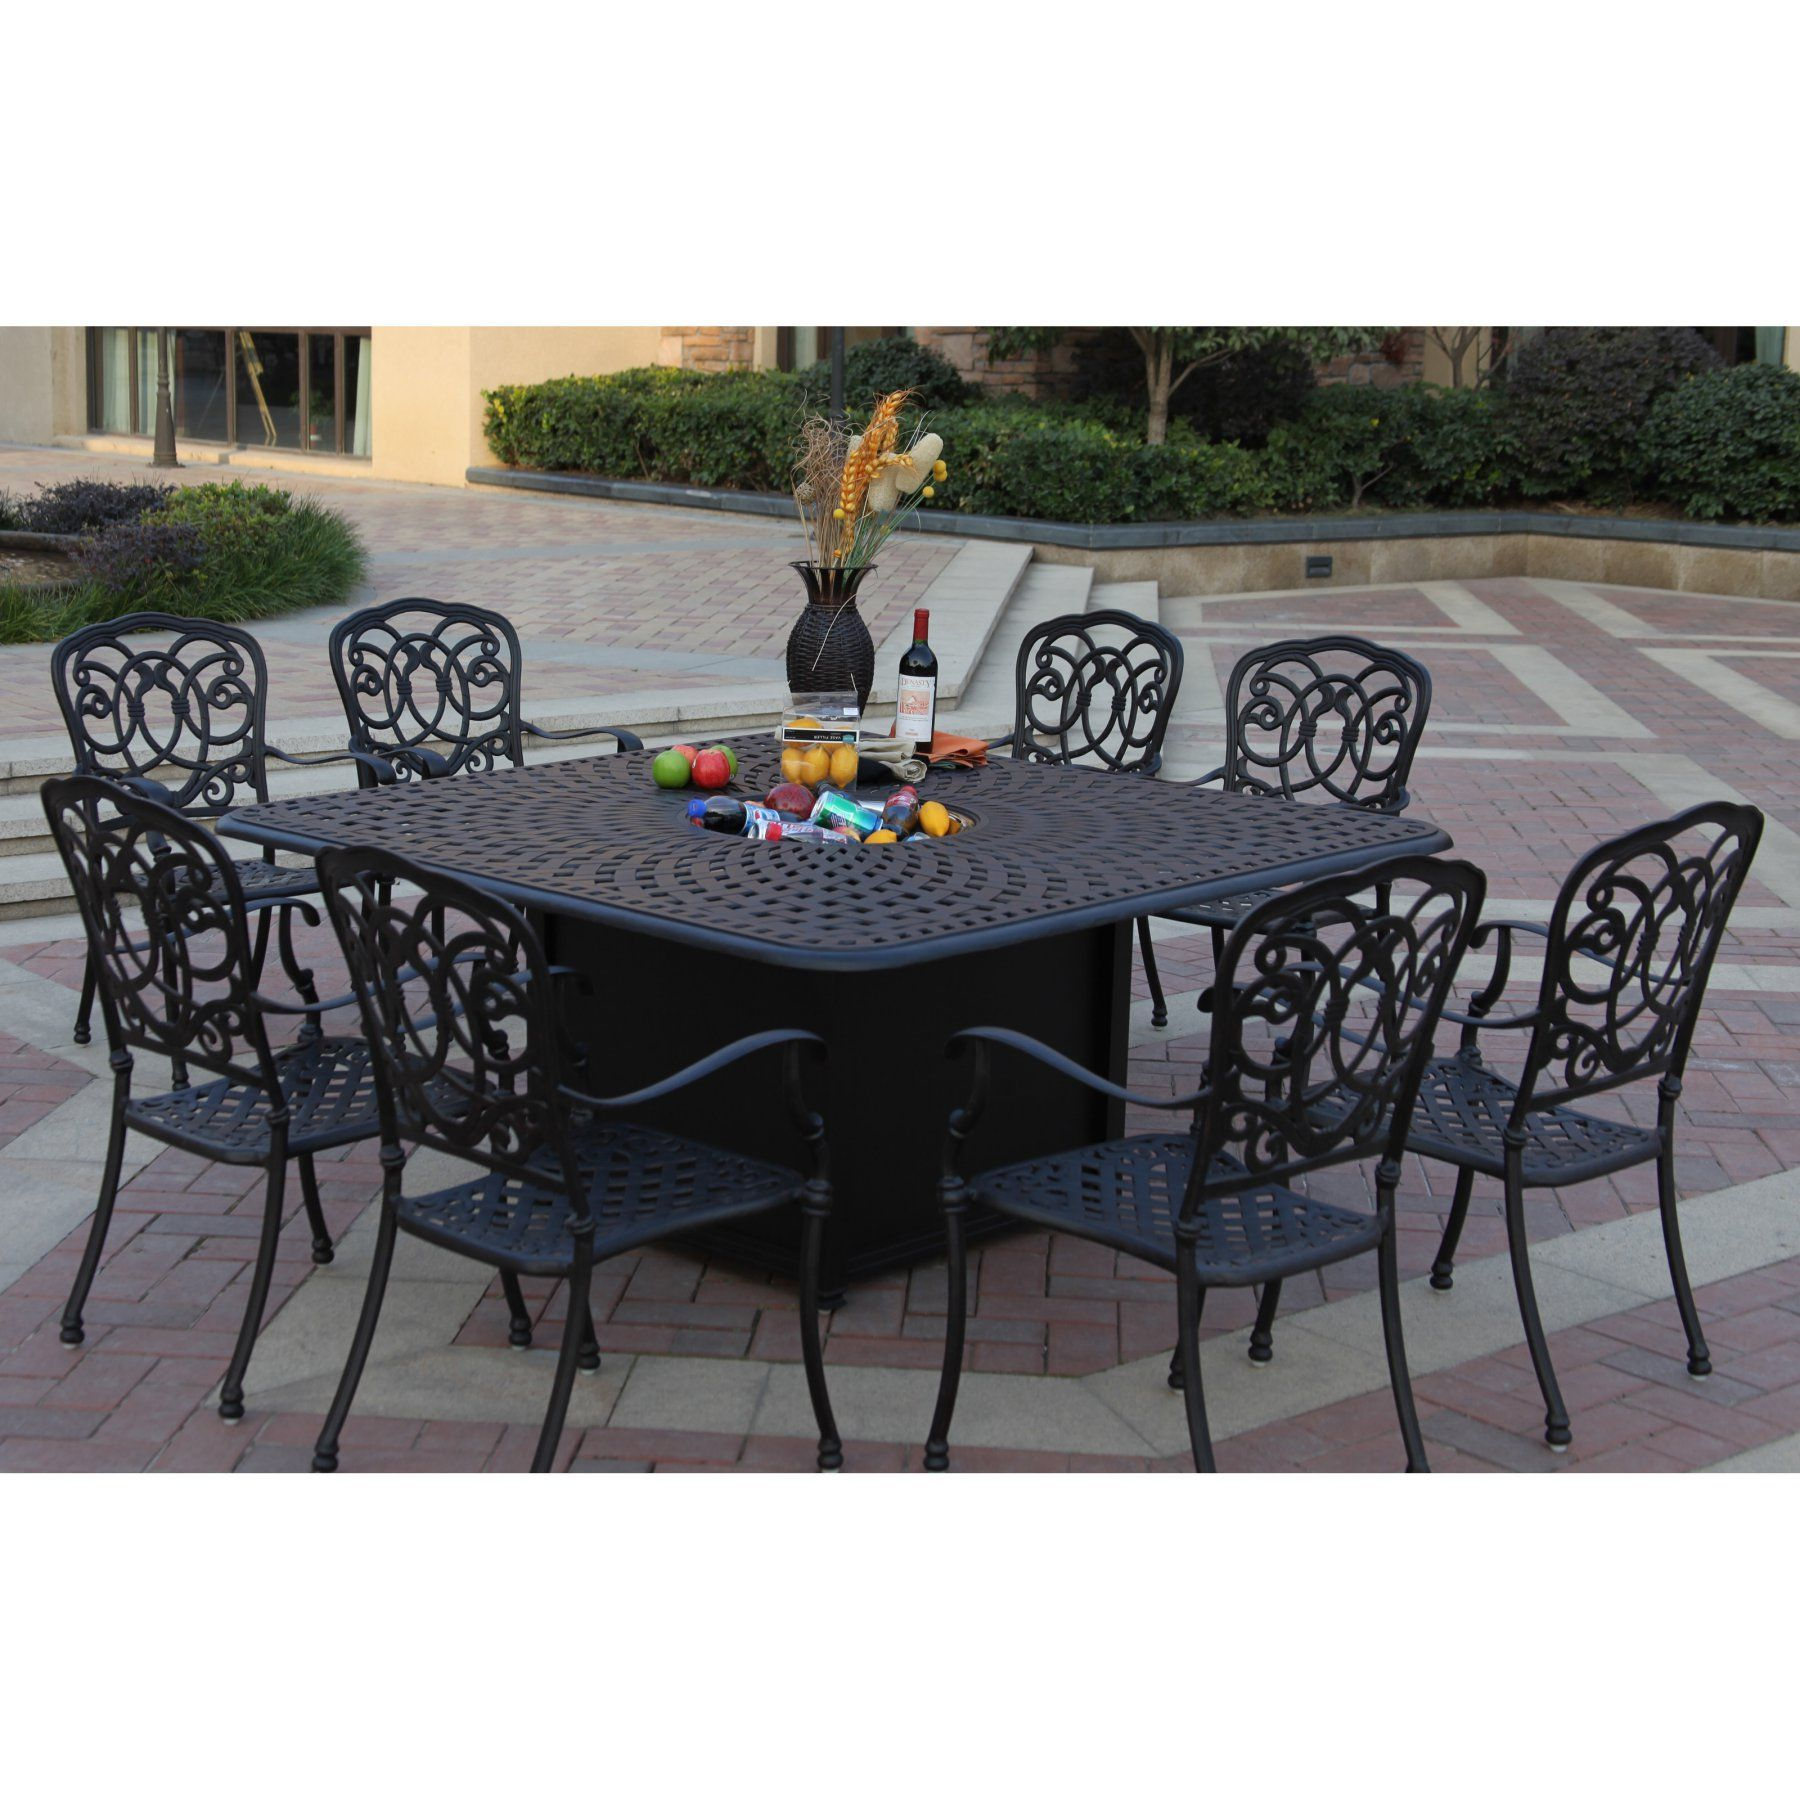 Outdoor Darlee Florence 9 Piece Aluminum Square Fire Pit ...